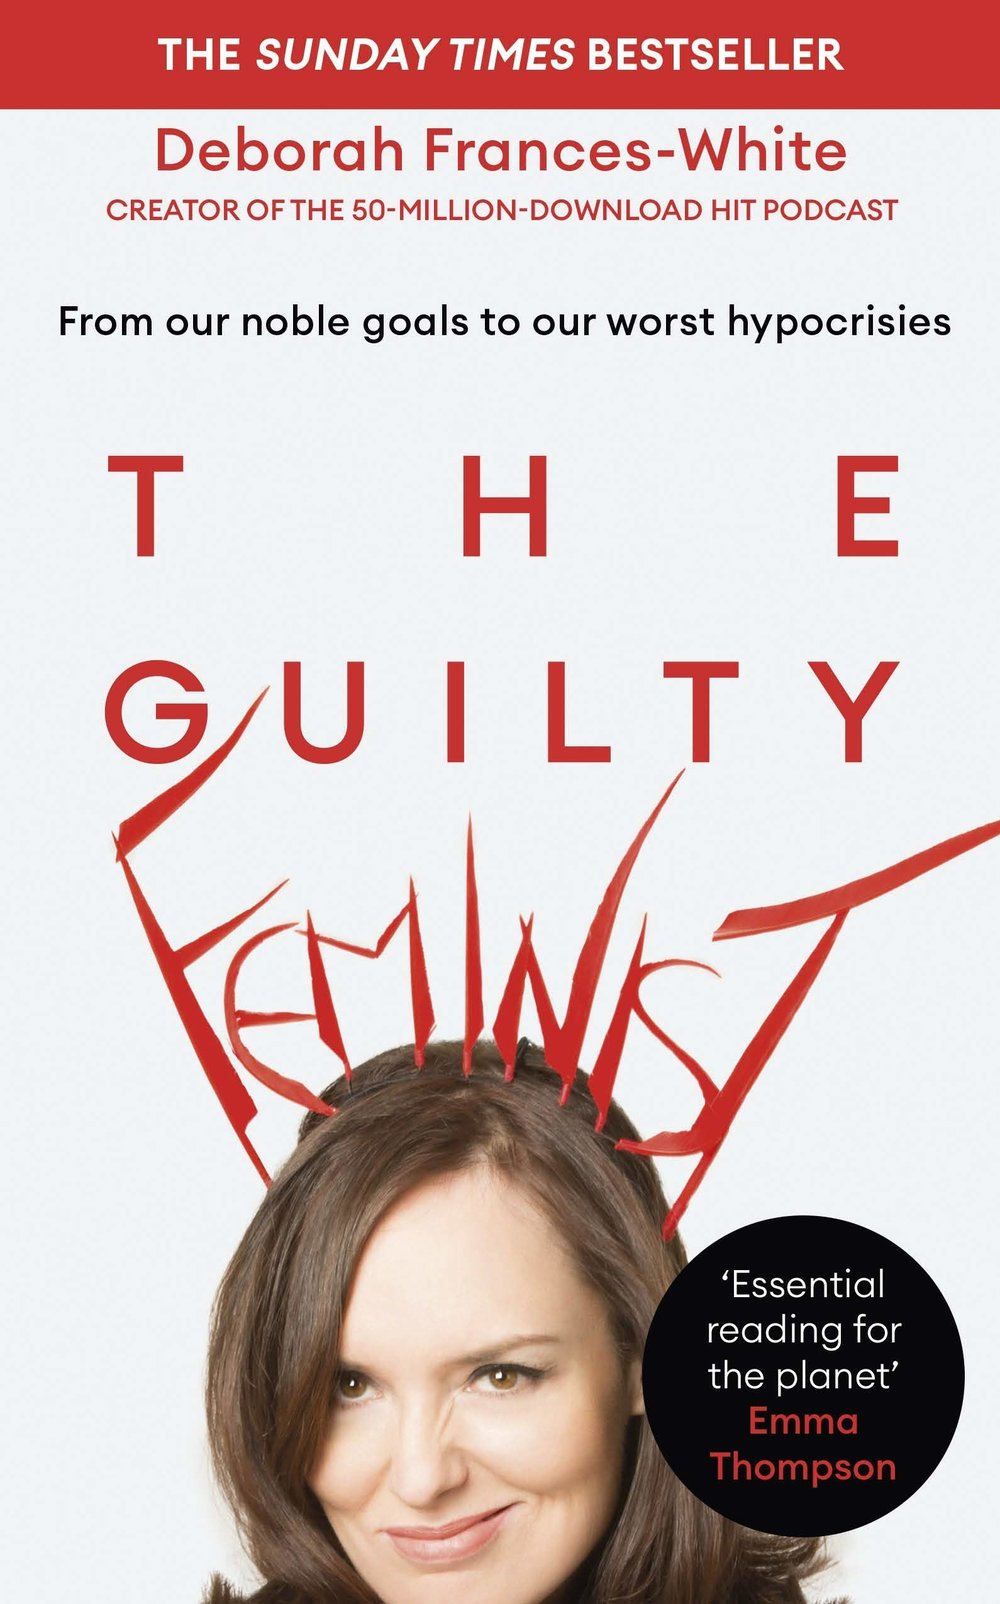 Image of the front cover of the book The Guilty Feminist